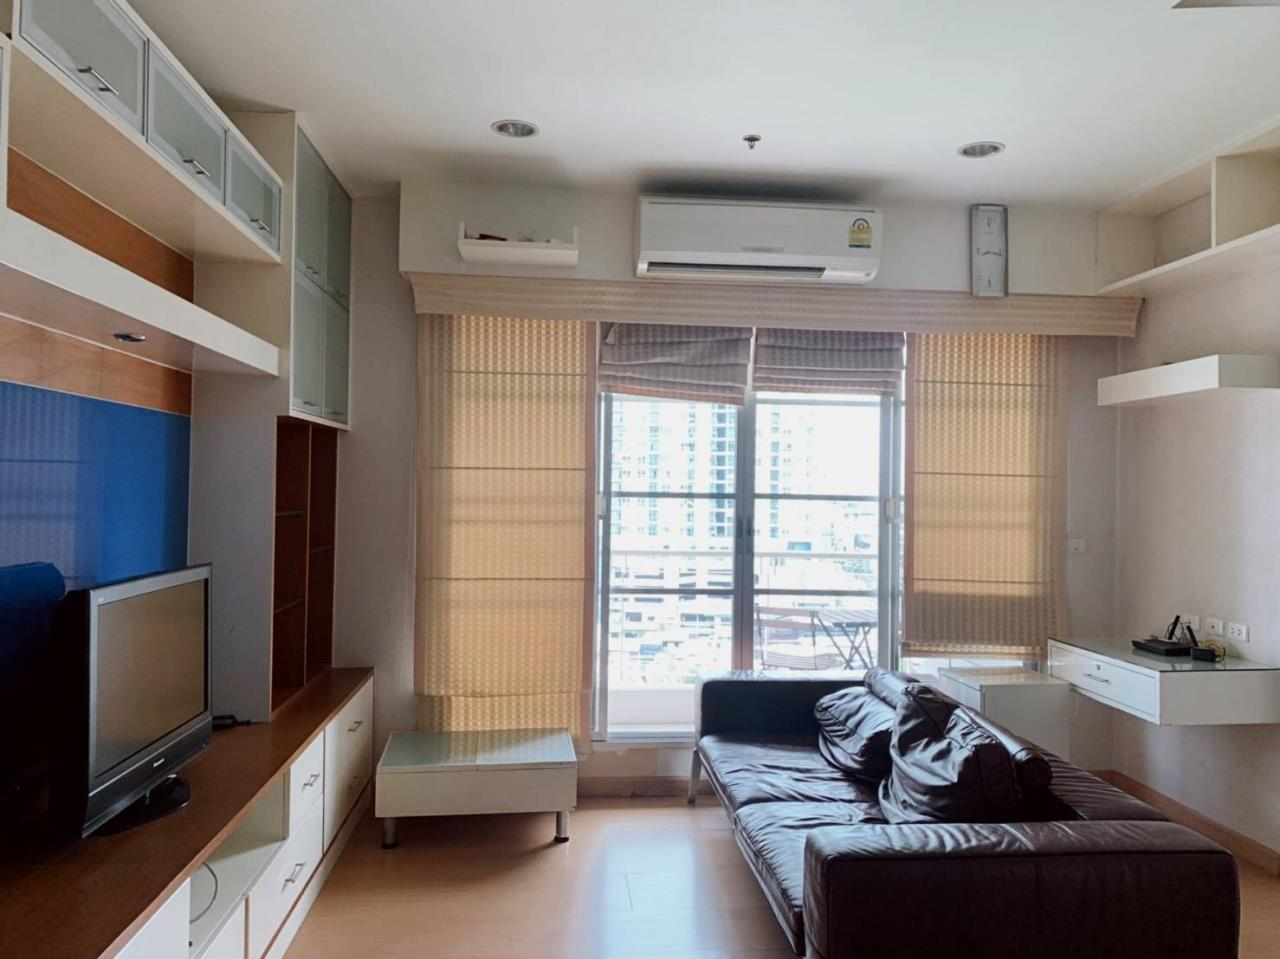 Uptown Assets  Agency's FOR Rent Condo Ban KlangKrung Siam Phathumwan 468/154 1